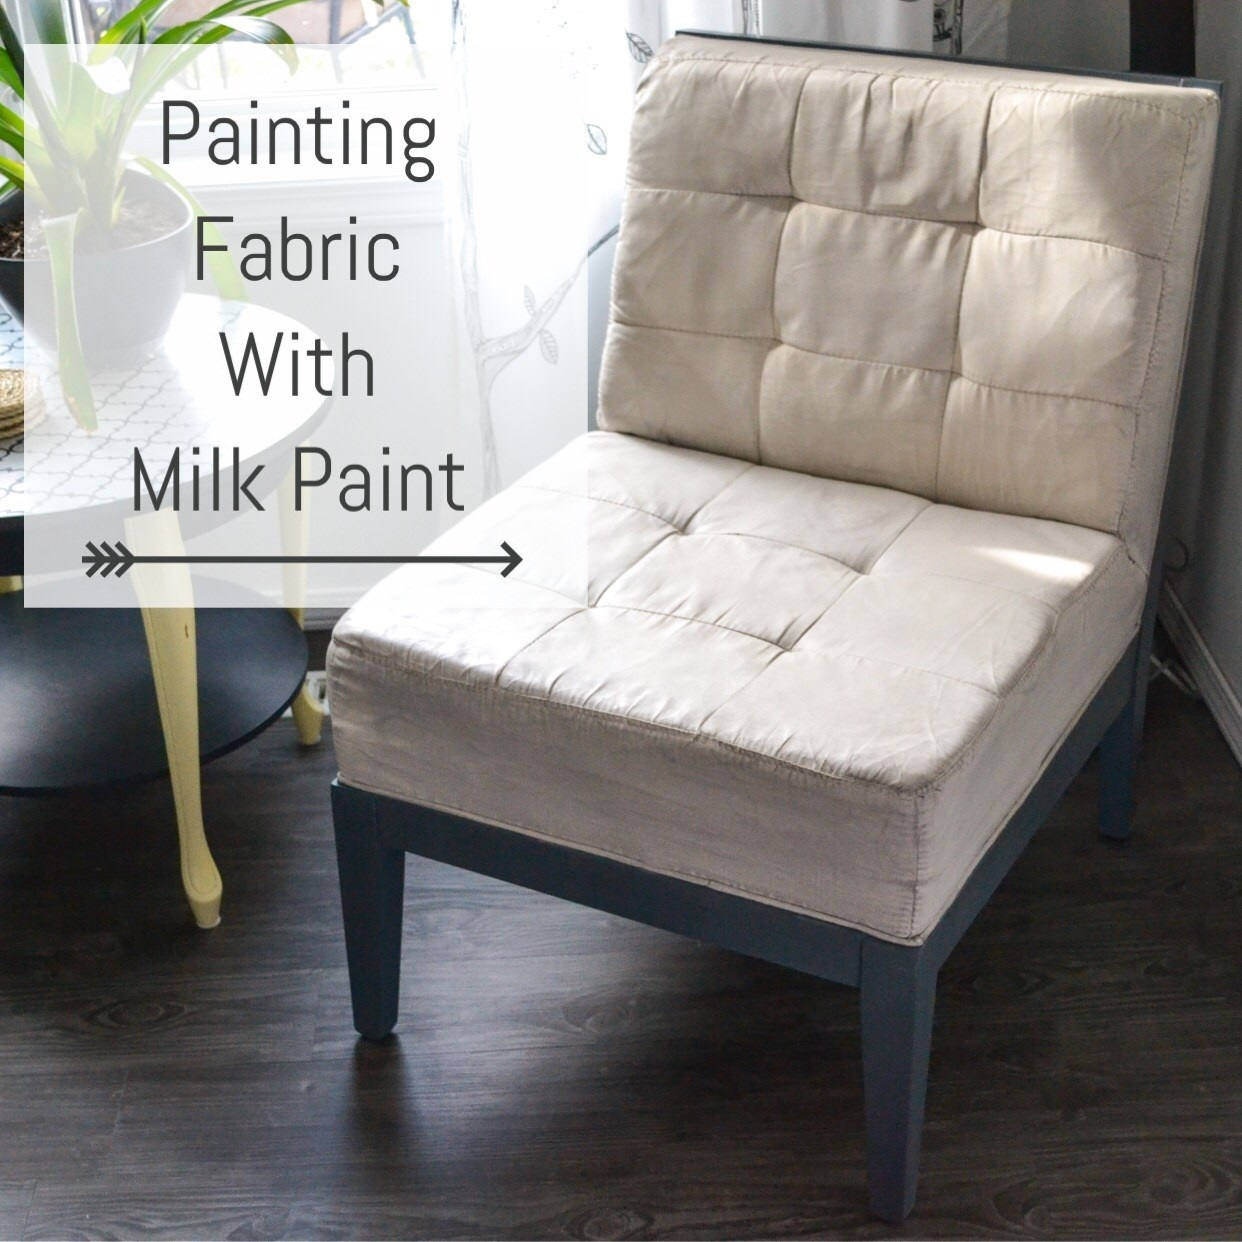 Painting Fabric with Milk Paint